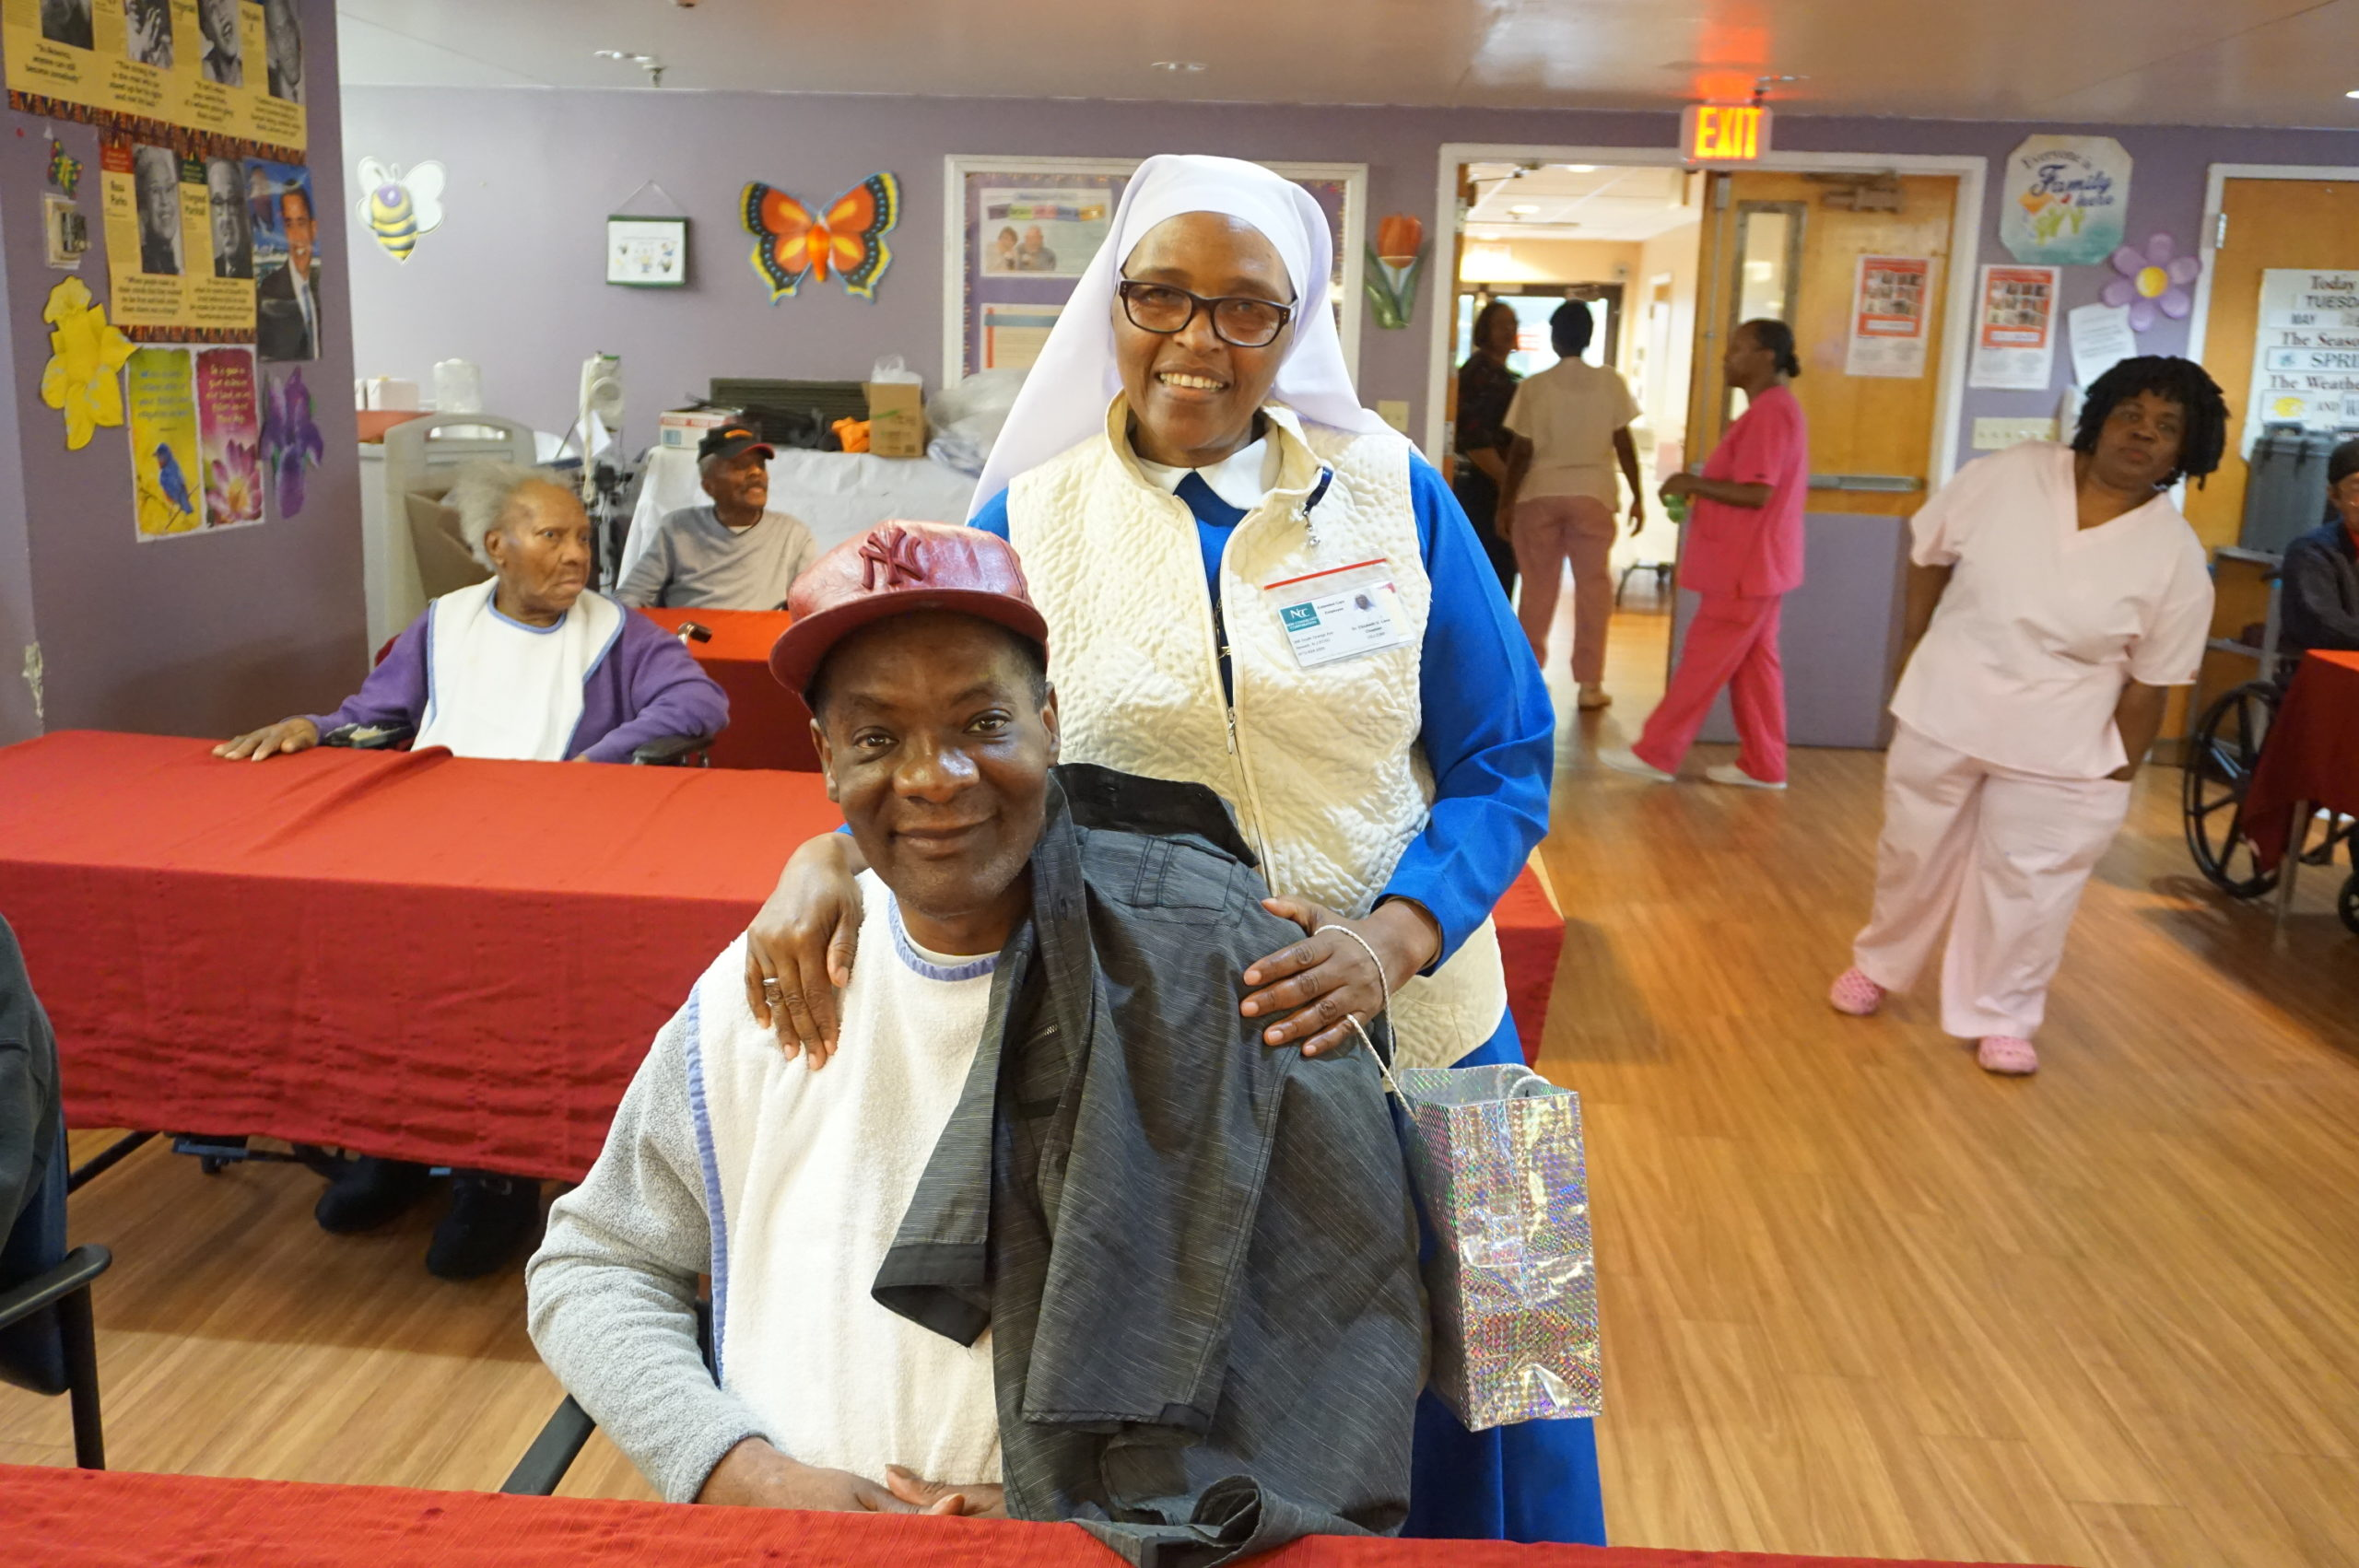 Extended Care Hosts Adopt-A-Resident Day